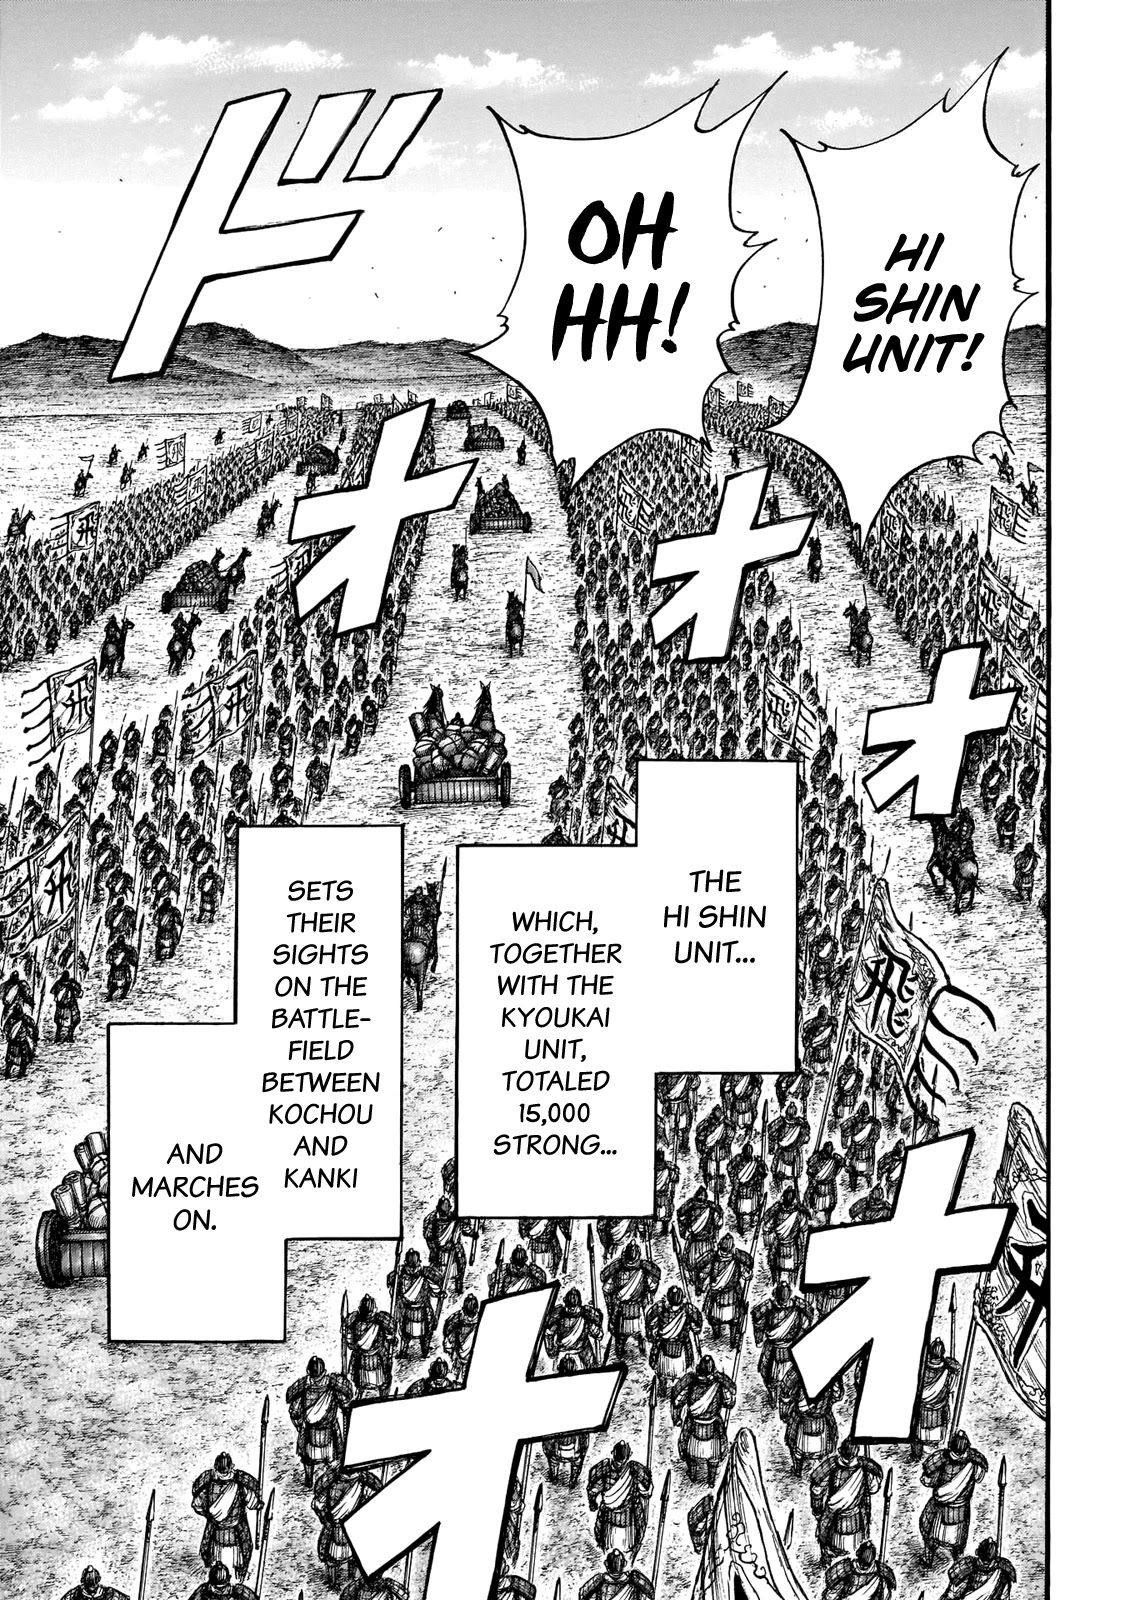 Kingdom Chapter 677: The Hi Shin Unit's Assignment